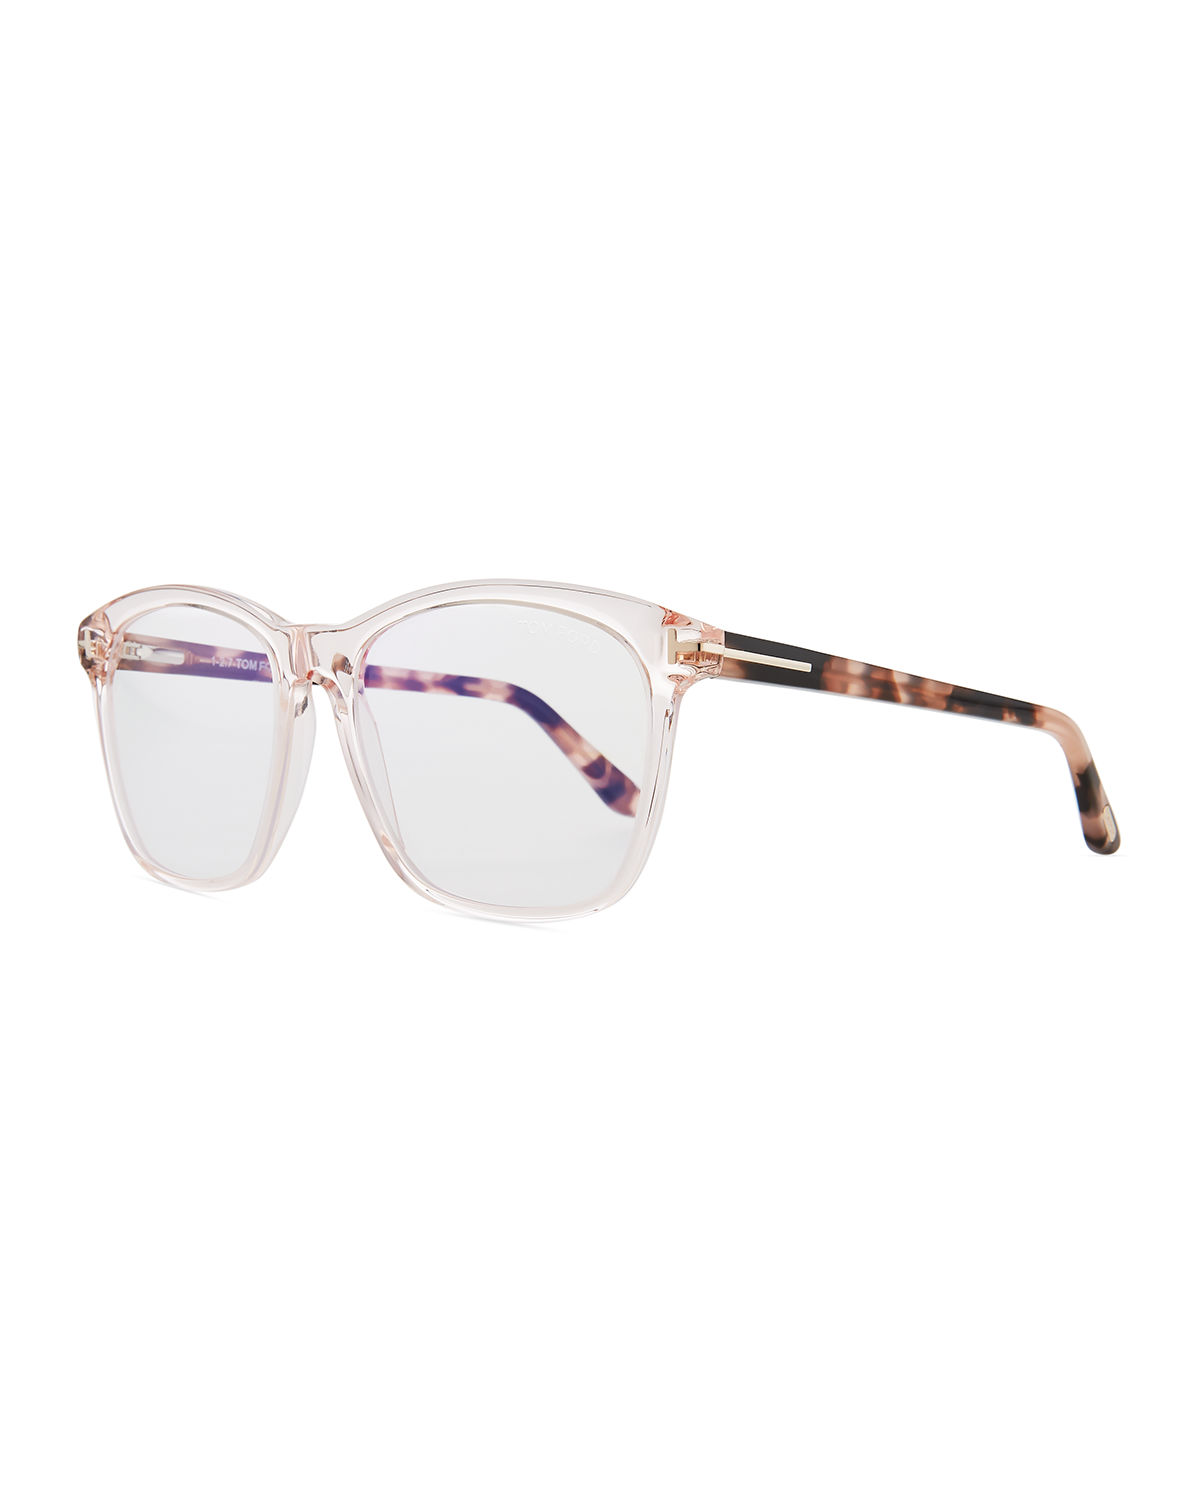 74cab13a59 TOM FORD Blue Block Two-Tone Transparent Acetate Square Optical Frames